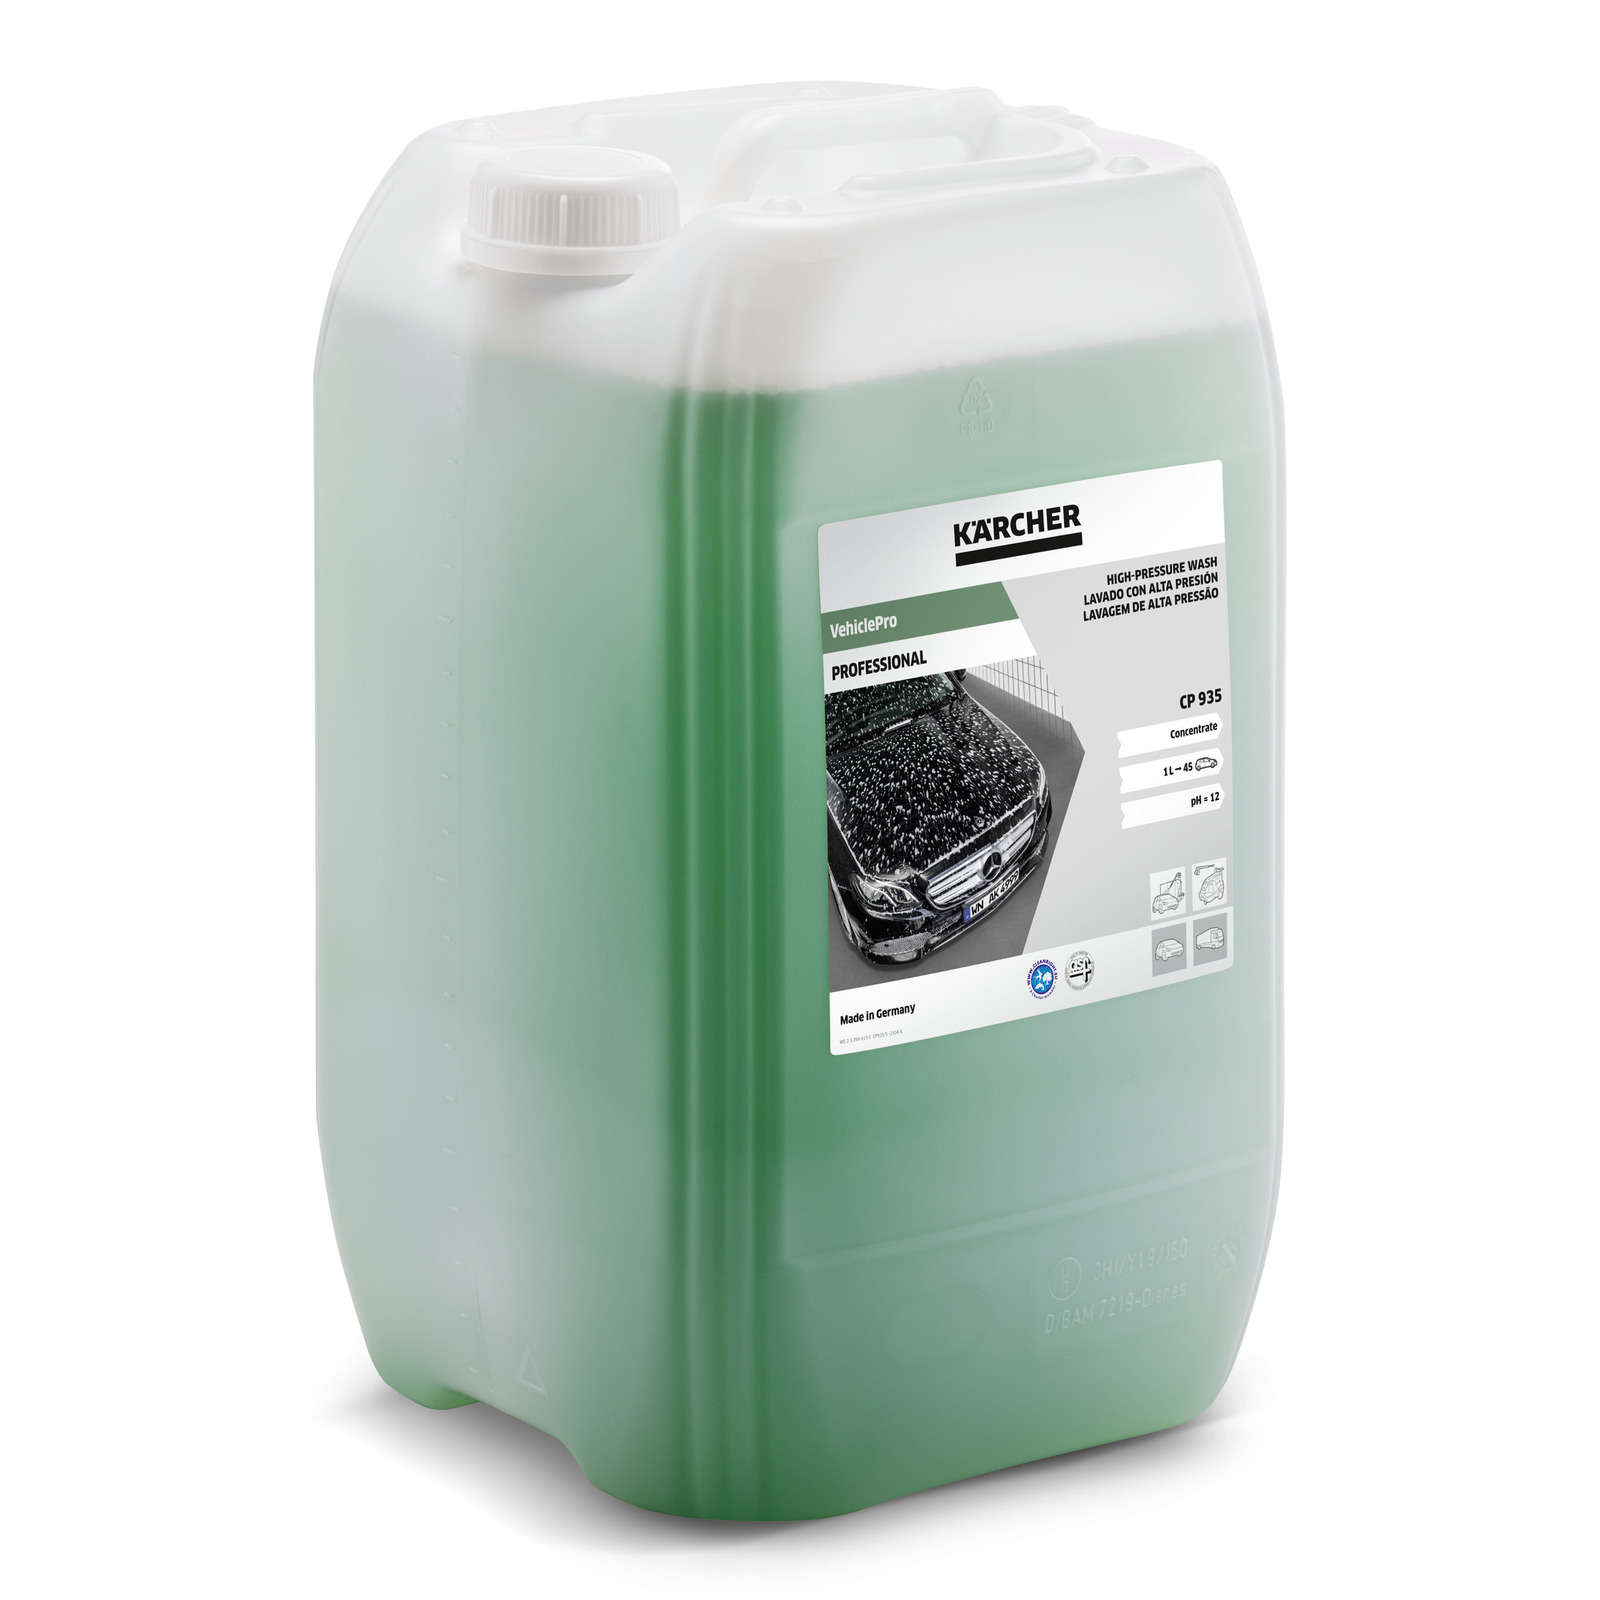 ... https://www.kaercher.com/uk/professional/cleaning-and-care-products/reinigungsmittel-professional/vehicle/hp-wash-cp-935-asf-62955170.html  Highly ...